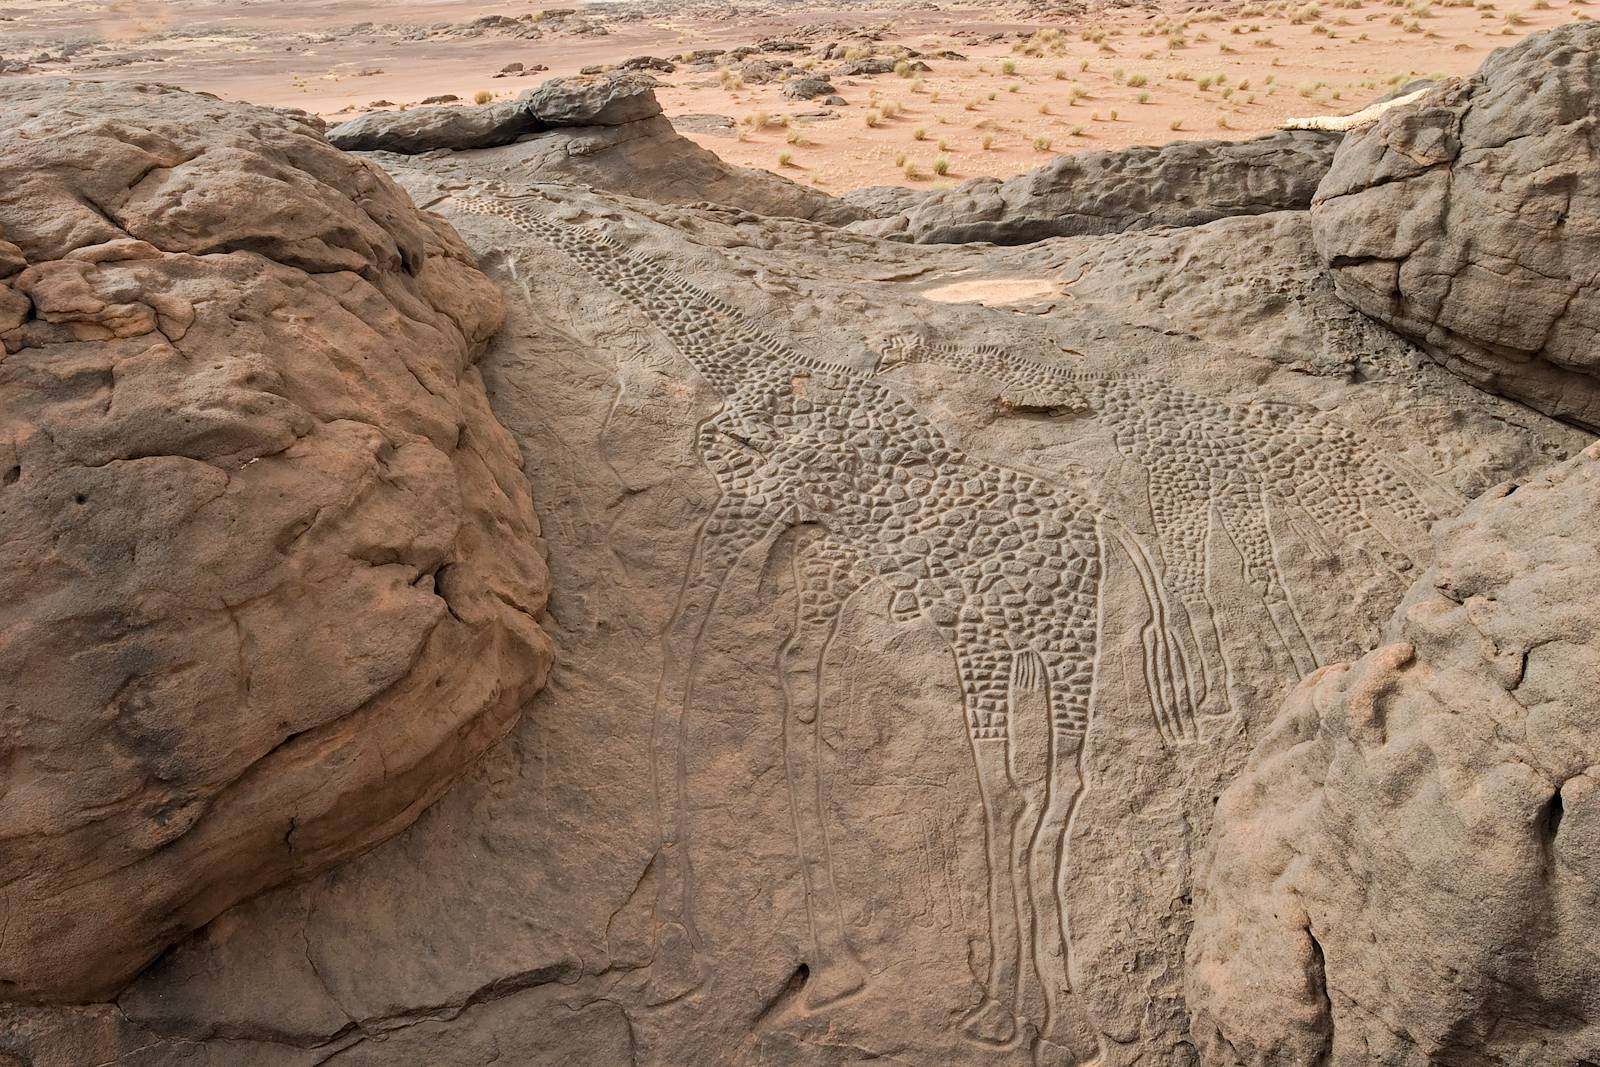 The Dabous Giraffes life-sized petroglyphs in the Ténéré Desert,Niger dating back to the New Stone Age at least 8000 years ago. Source: http:// i.imgur.com/LNaAwbN.jpg